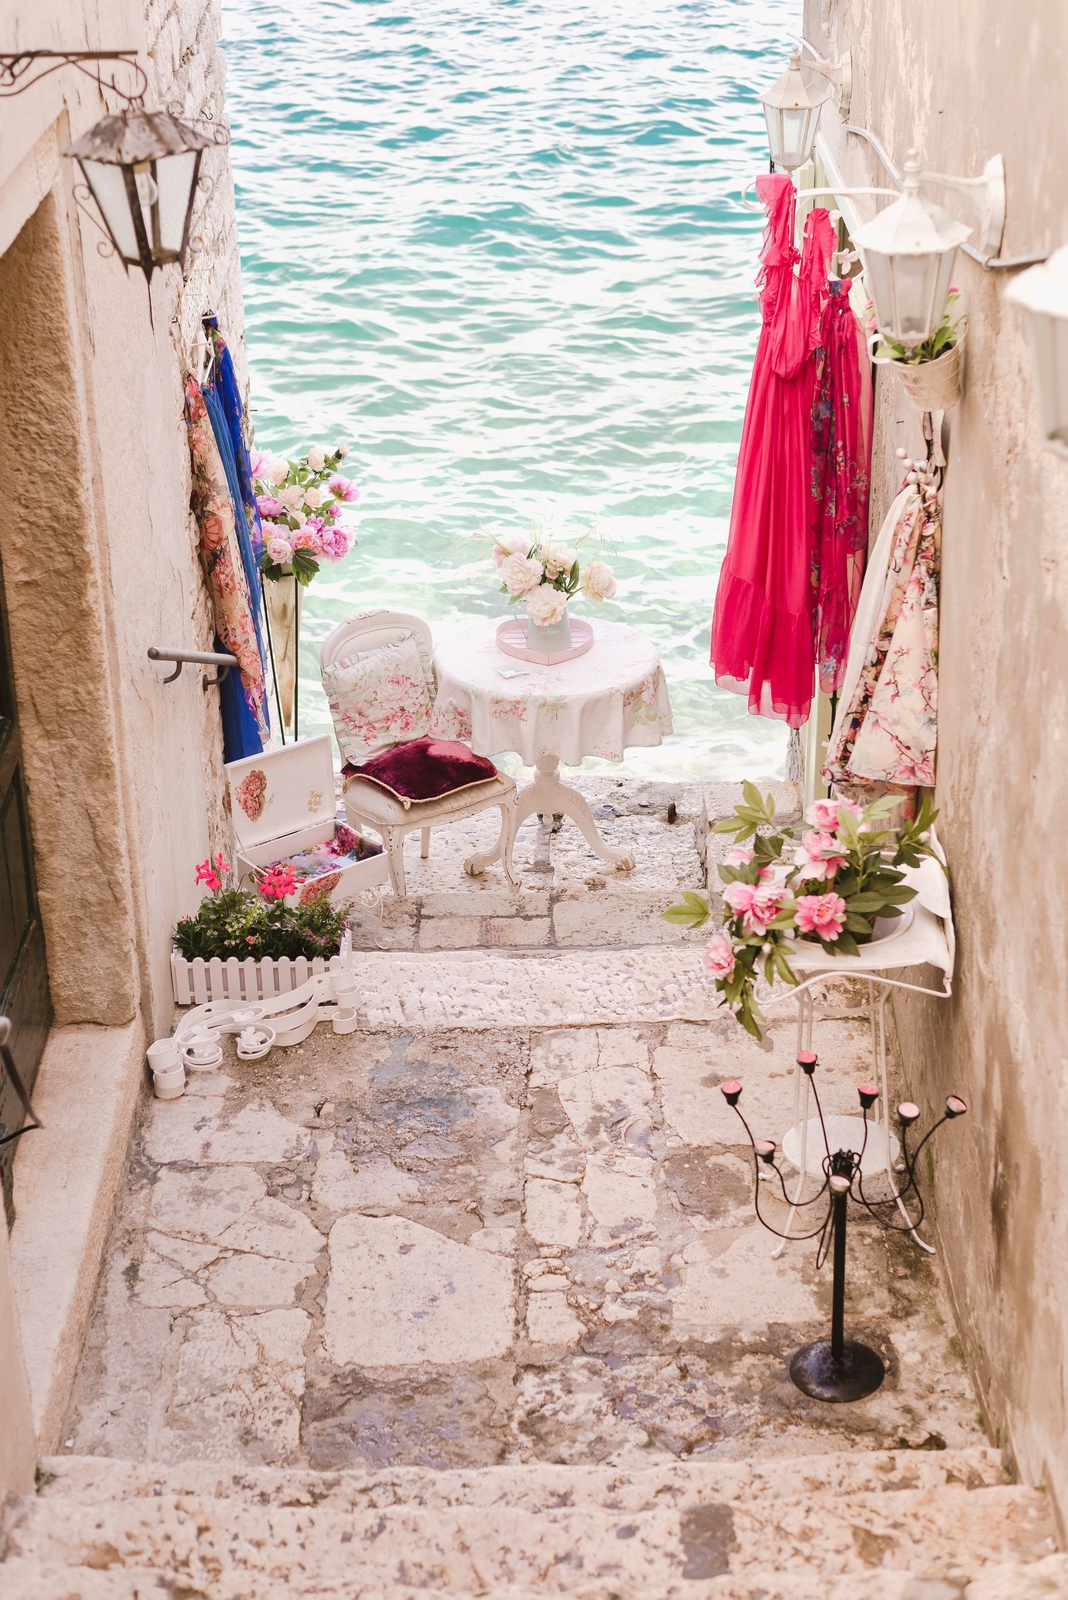 Charming alleyway in the Old Town of Rovinj, Istria - from travel blog http://Epepa.eu